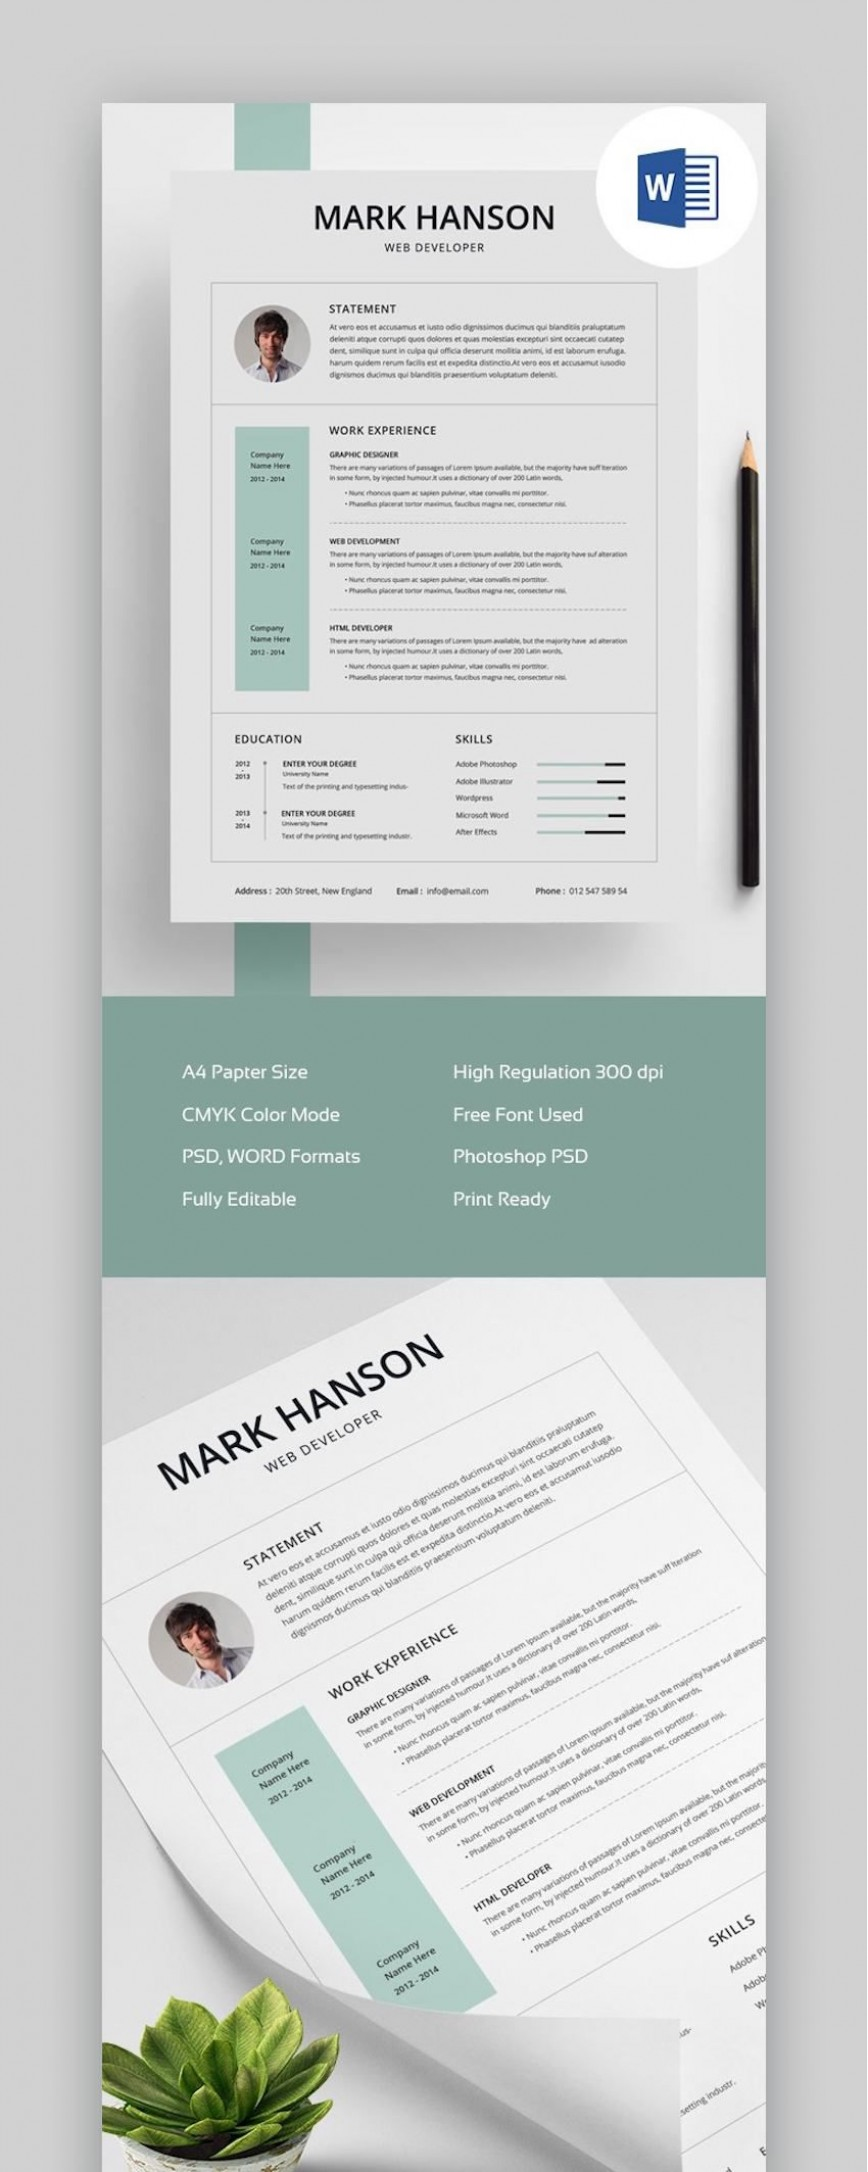 003 Archaicawful Download Elegant Resume Template Microsoft Word Image